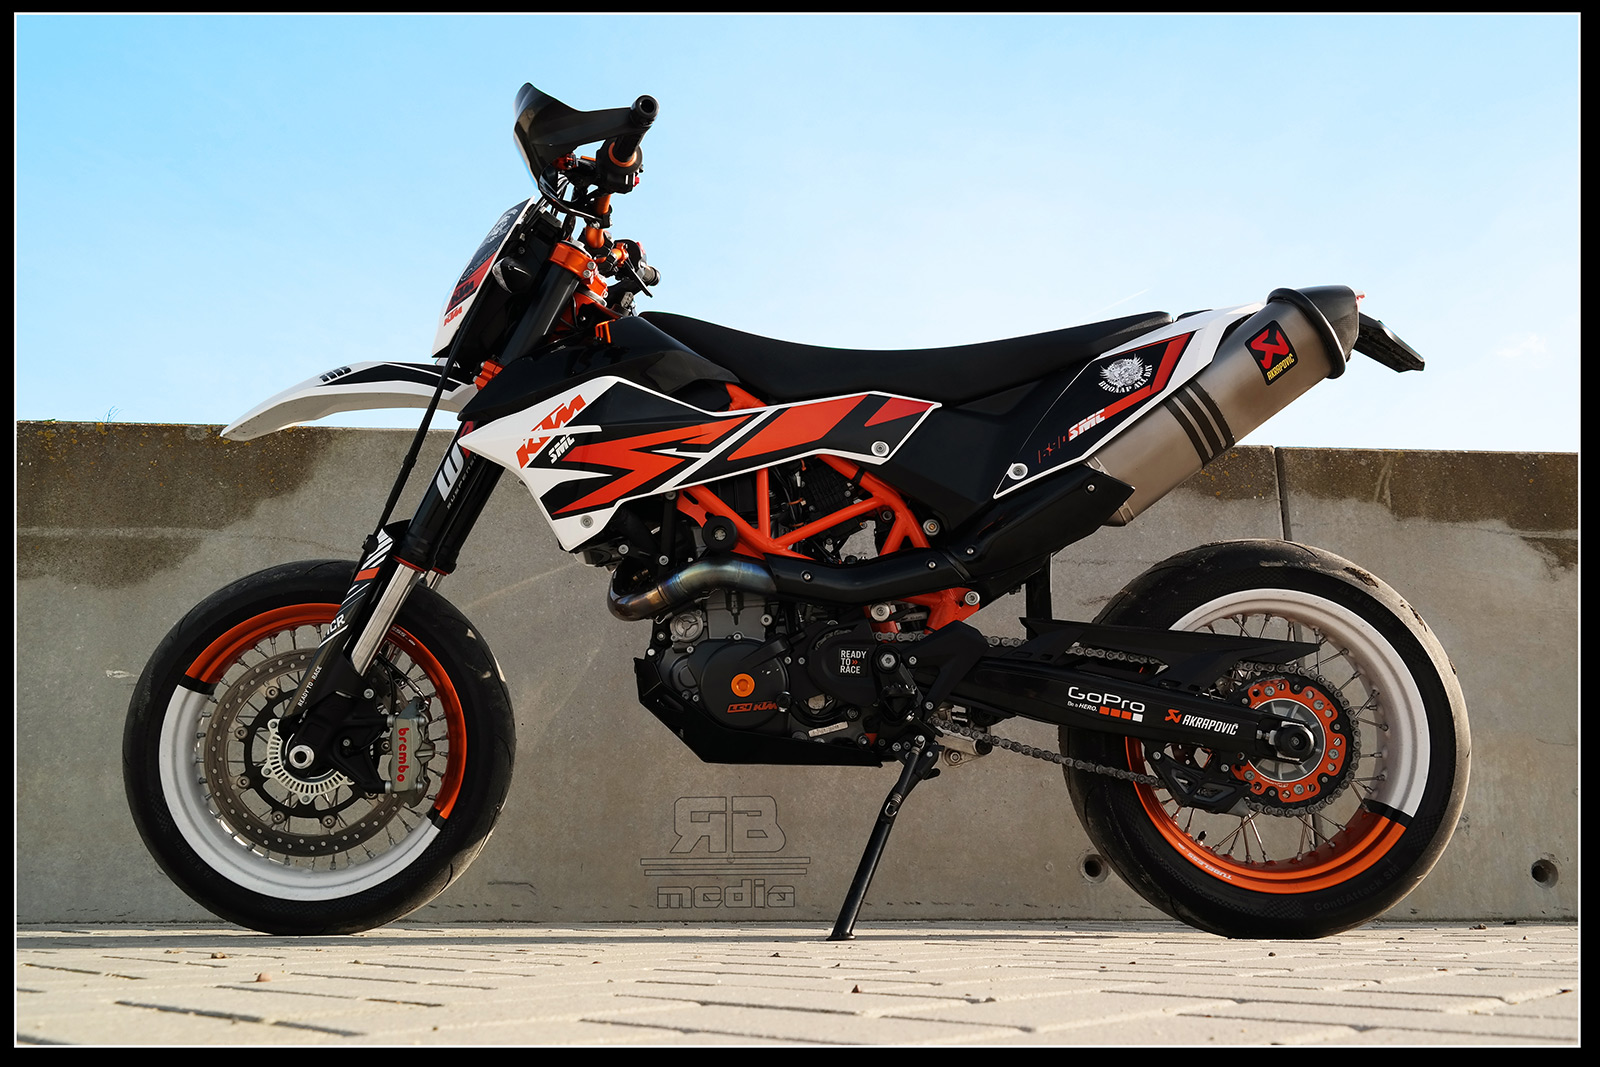 Ktm 690 smc r wallpapers for desktop - An Error Occurred